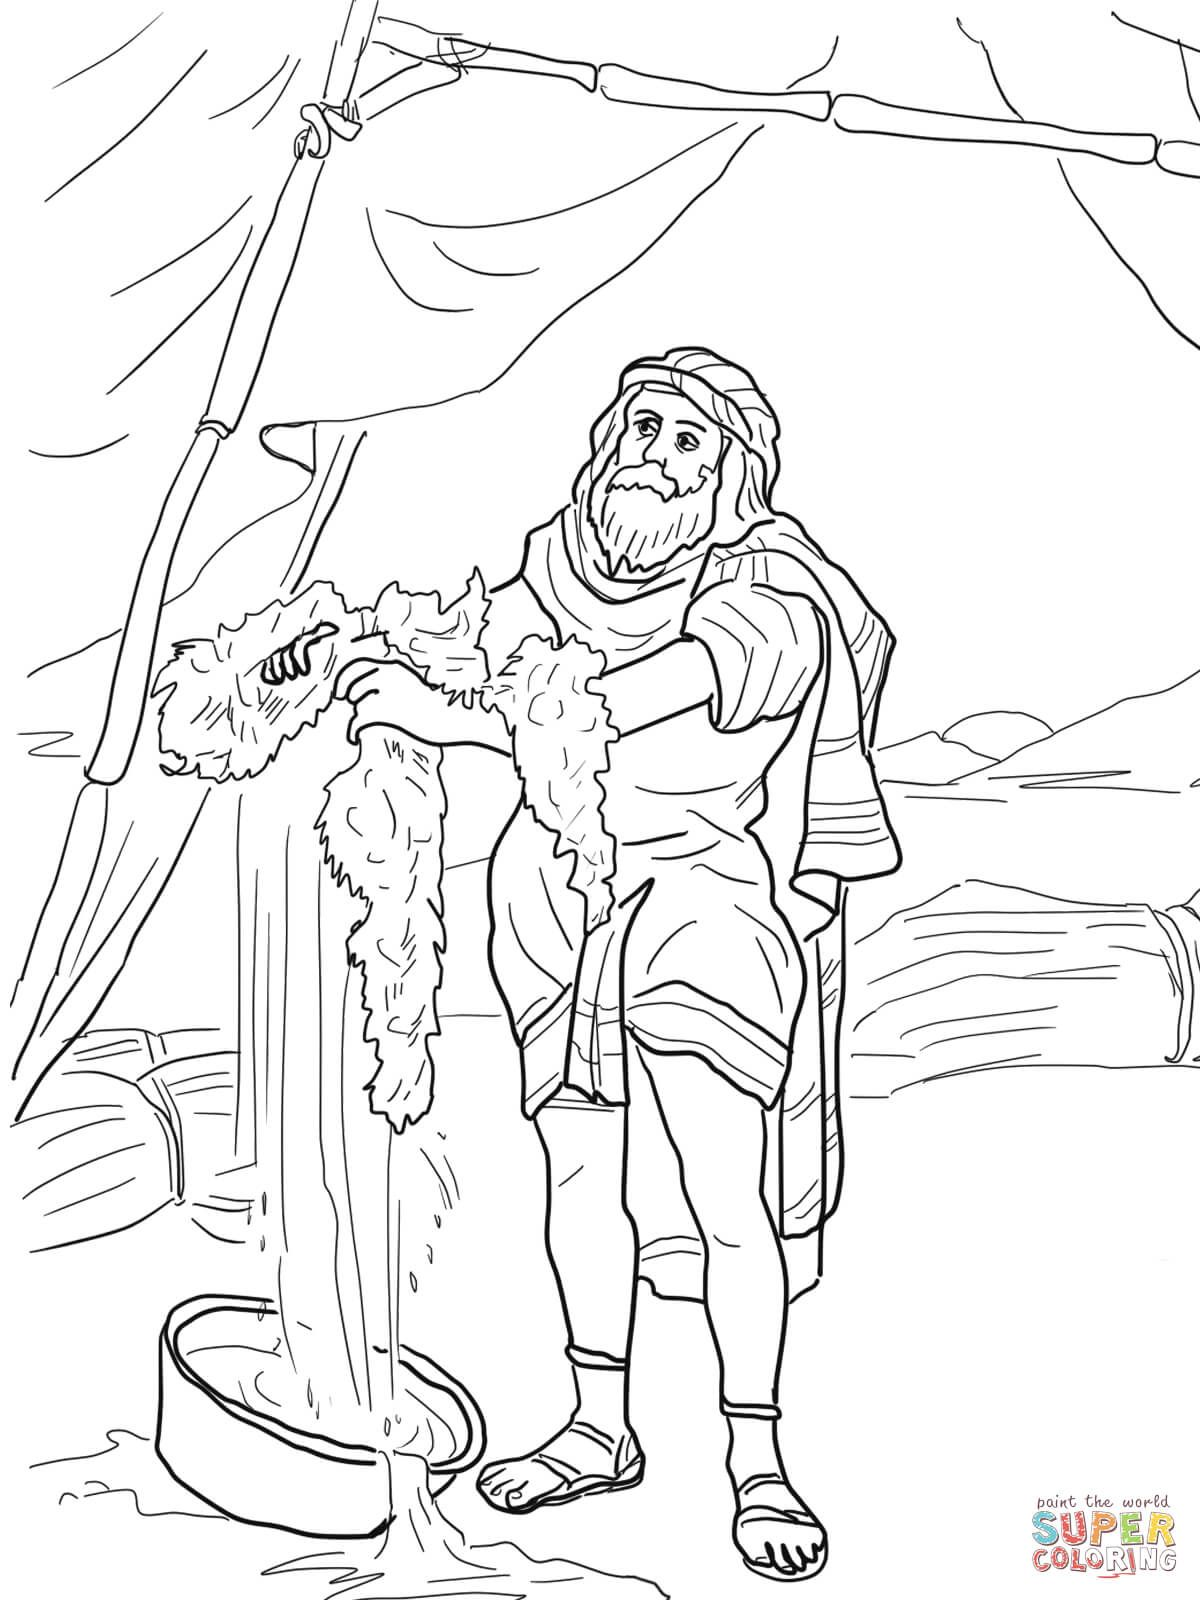 gideon coloring pages gideon and the fleece coloring page free printable gideon coloring pages